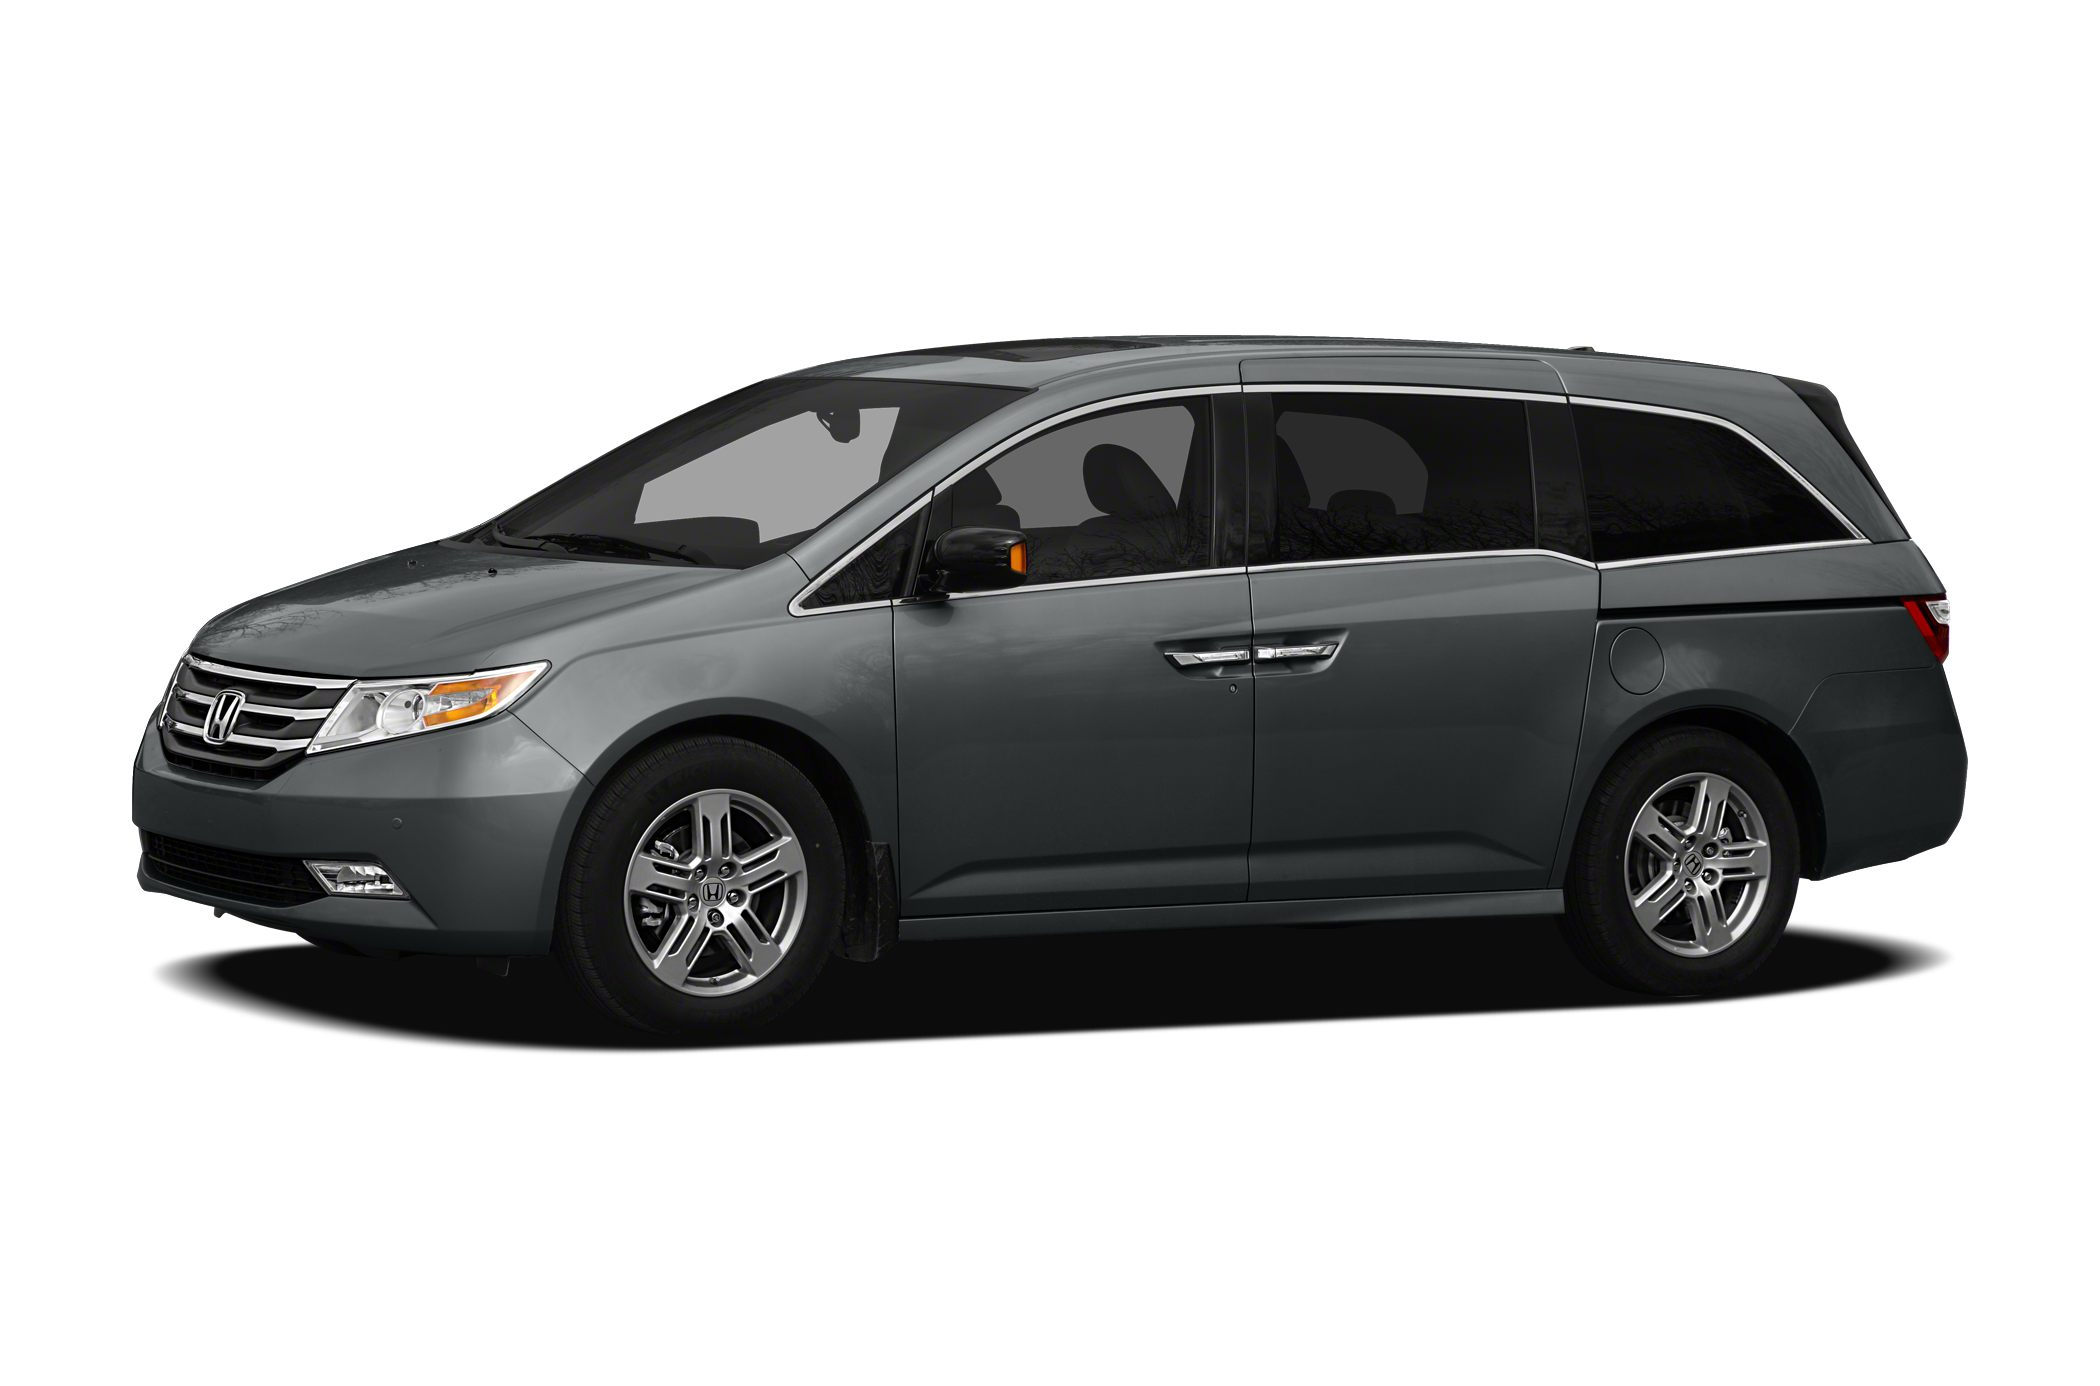 ca van touring in for sale new odyssey san jose honda automatic touringautomatic